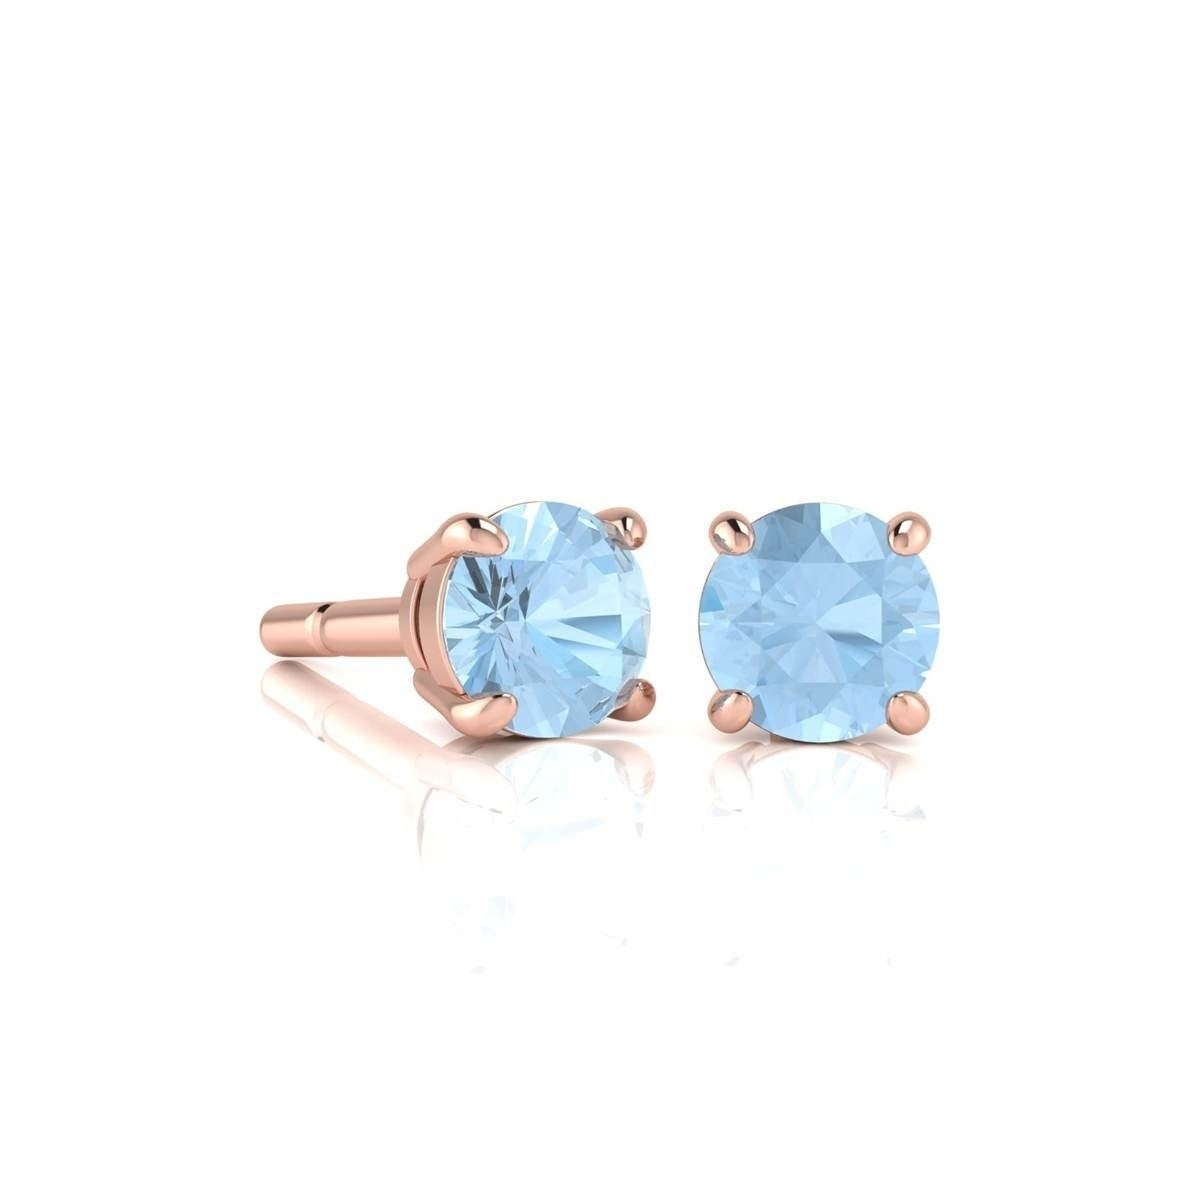 in earrings marine set silver tgw stud jewelry aqua sterling aquamarine dp amazon com